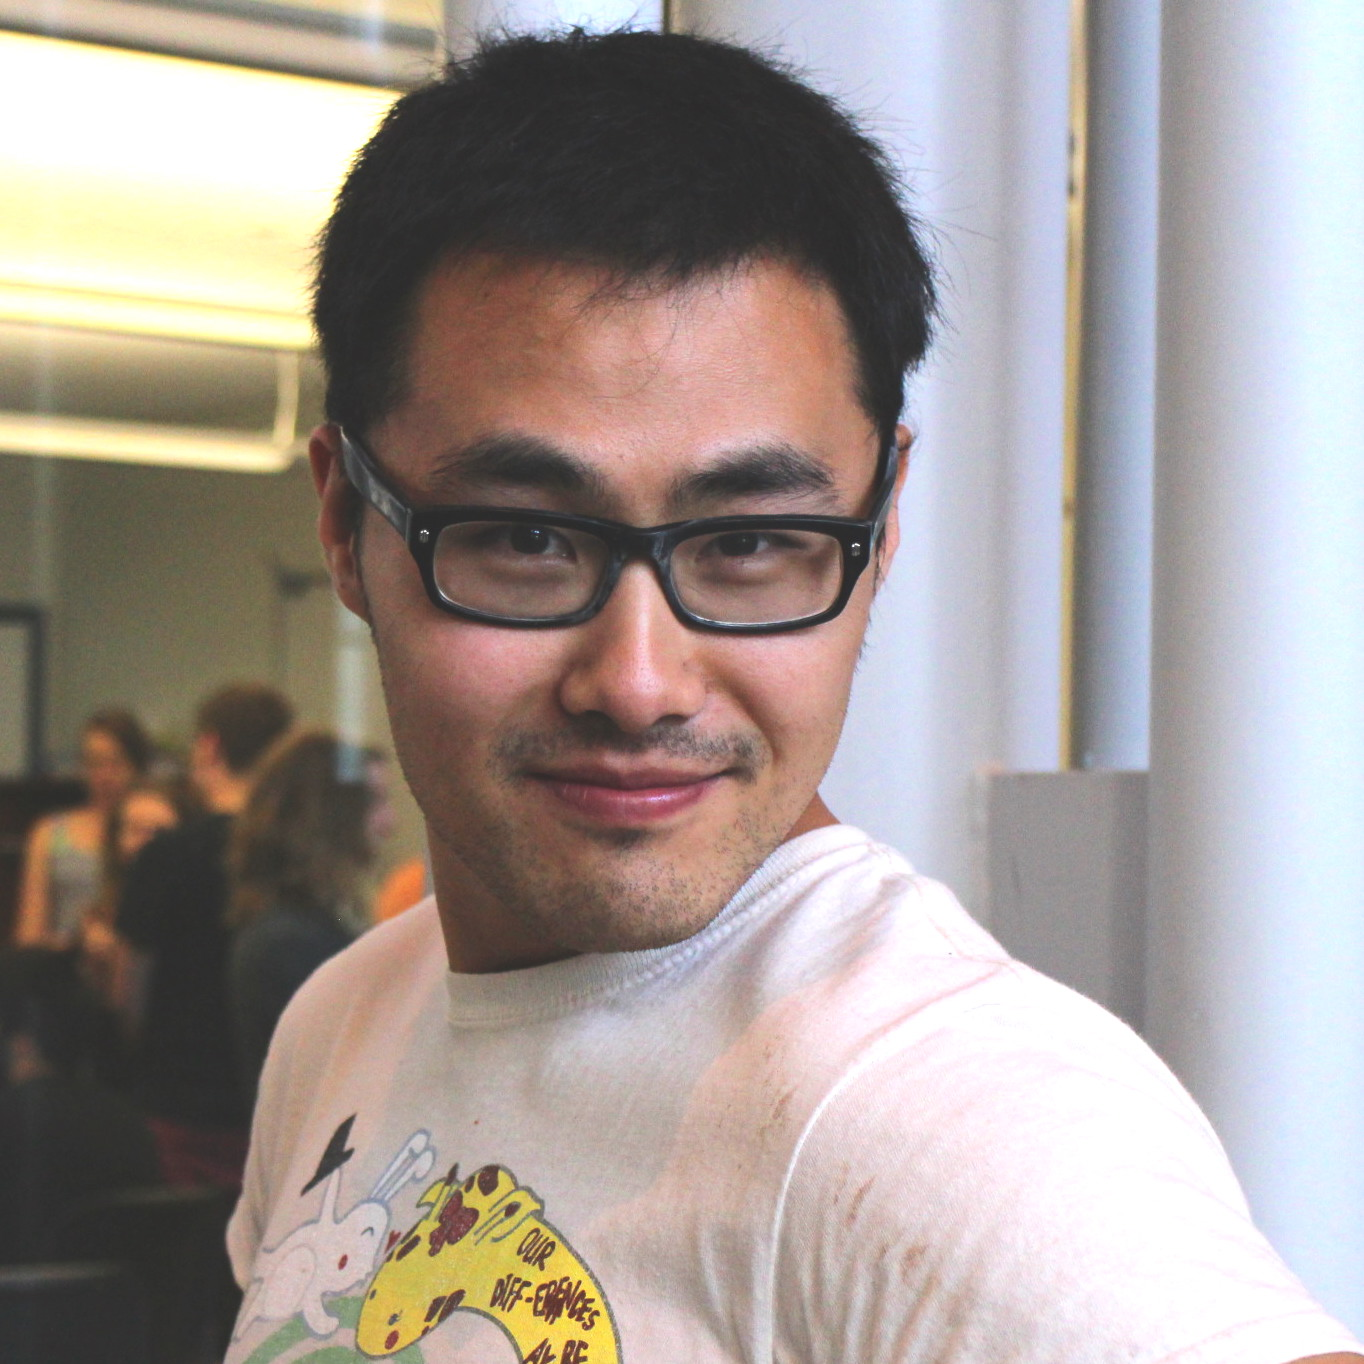 PONG QI   is the Crew Platform's Lead Developer. He is a co-founder of Crew 2030 and a FeelGood Berkeley Chapter Alumni. He grew up in Qingdao, China and came to California in 2006. In 2009, he went to UC Berkeley where he graduated in 2013 with degrees in computer science and applied math. He has over 10 years of experience as a developer. He's basically a genius. Pong really likes traveling and has been to more than half of all the states in the US. He lives in El Cerrito, CA where he rock climbs, adventures and co-works with his dear friends.